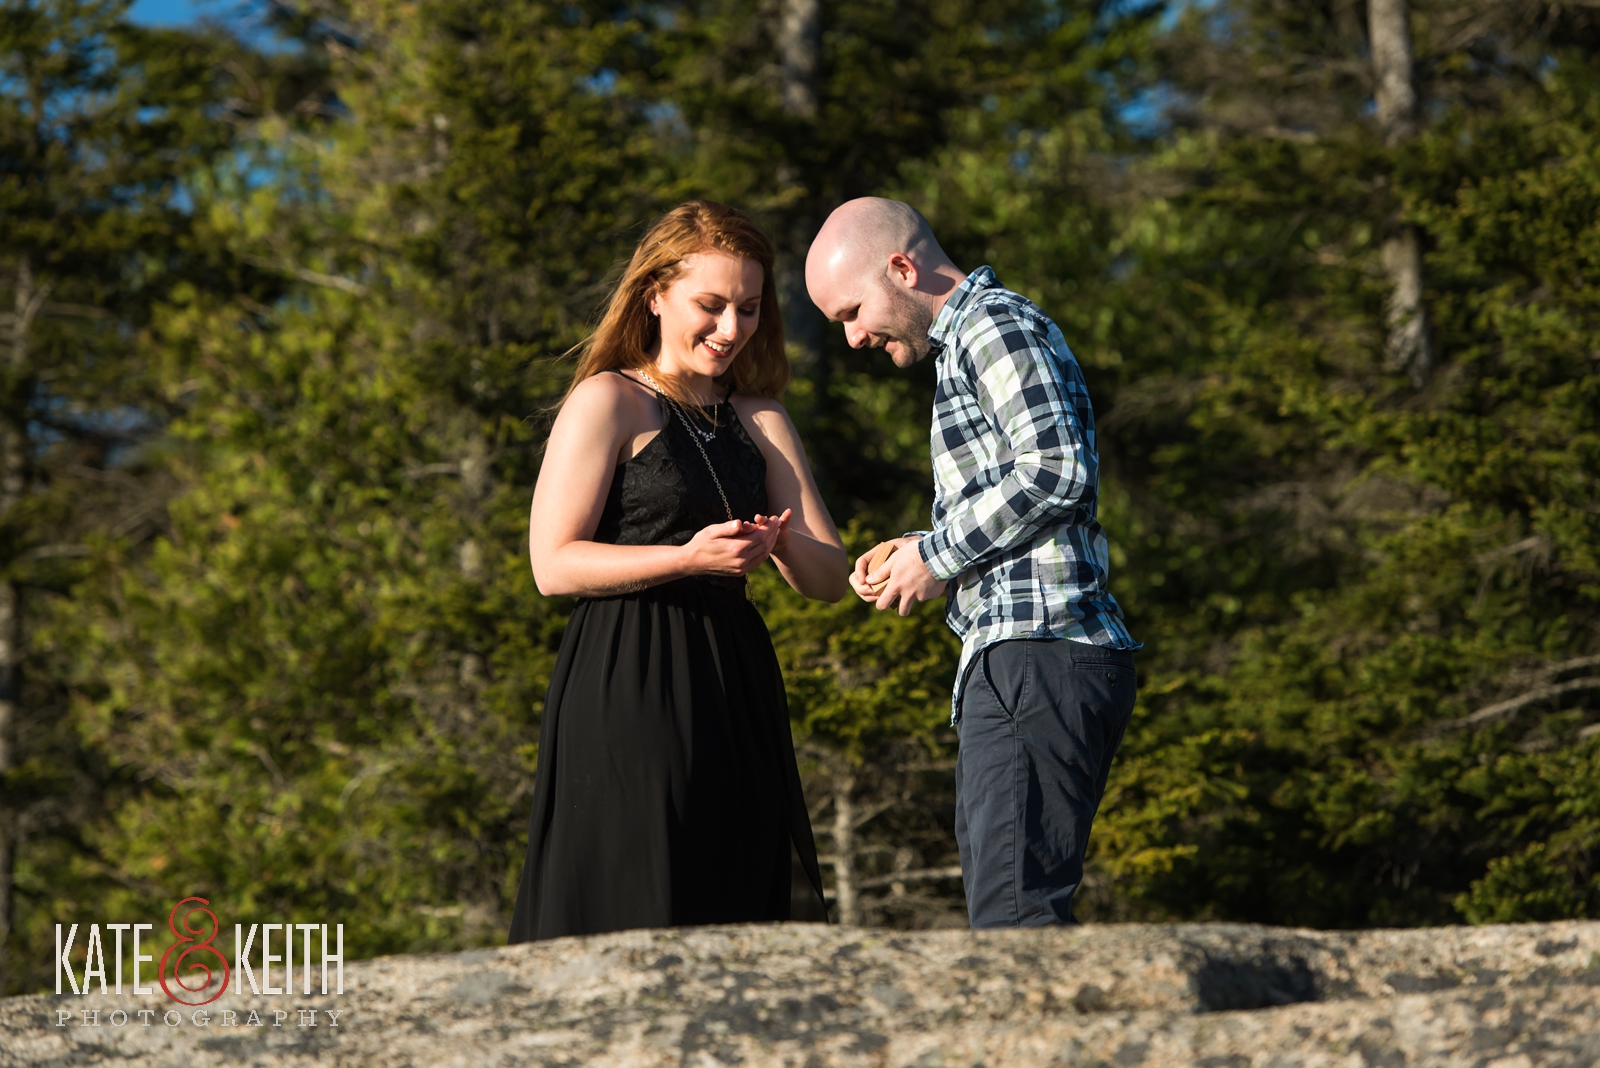 Acadia National Park, marriage proposal, engagement, engaged, wedding proposal, sunset, summer, summertime